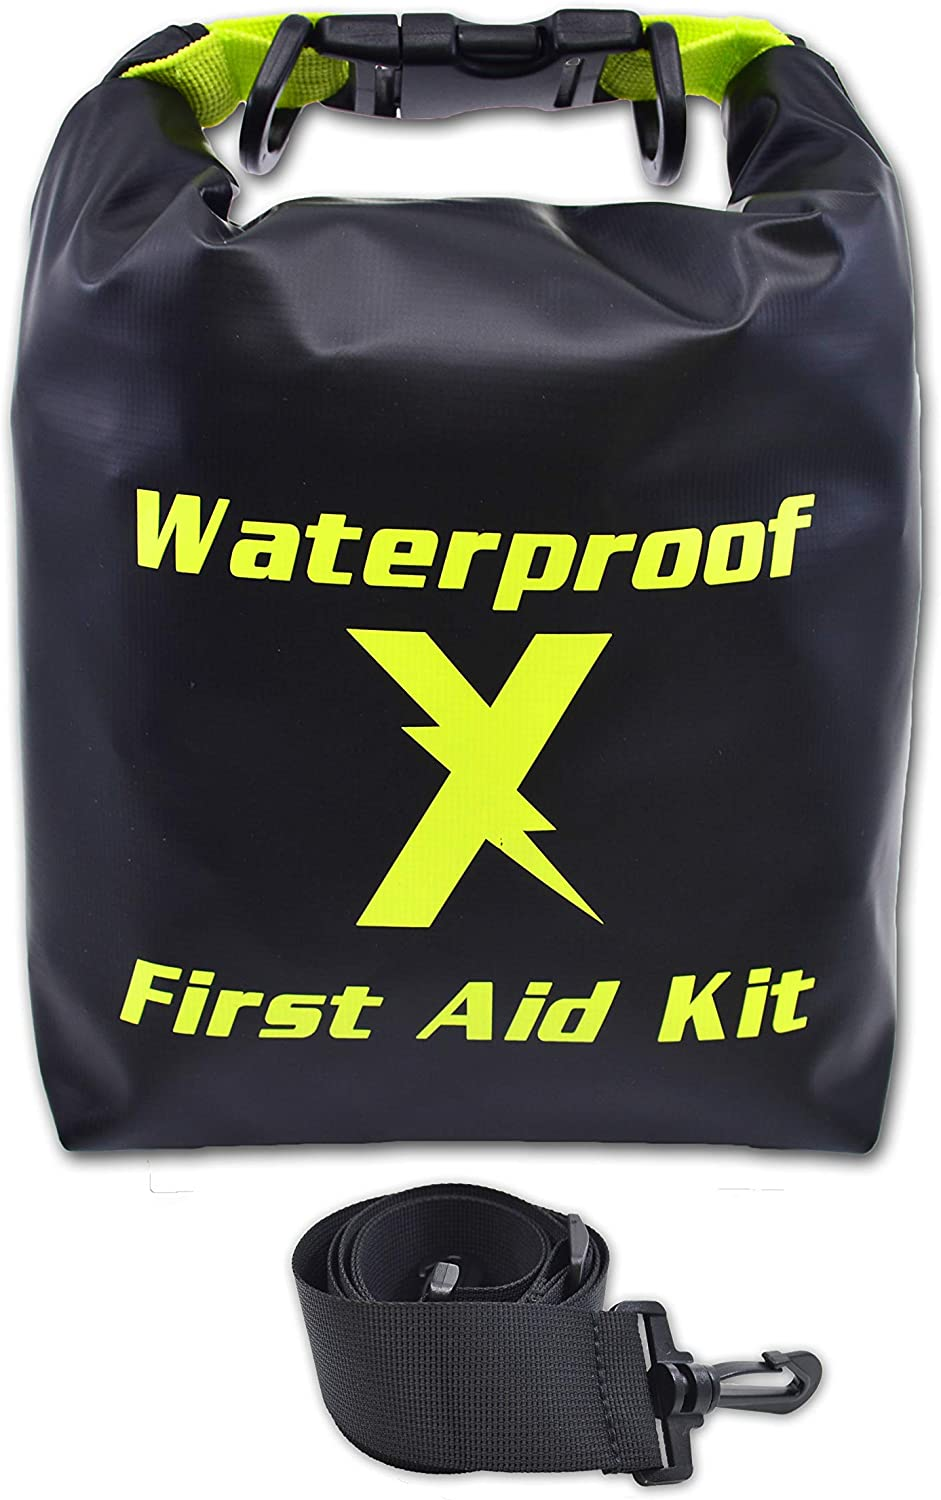 Lightning X Waterproof Hi-Vis First Aid Kit - 104 Pieces w/Dry Bag for Emergency, Survival, Camping, Boating, Hiking & Sports: Health & Personal Care